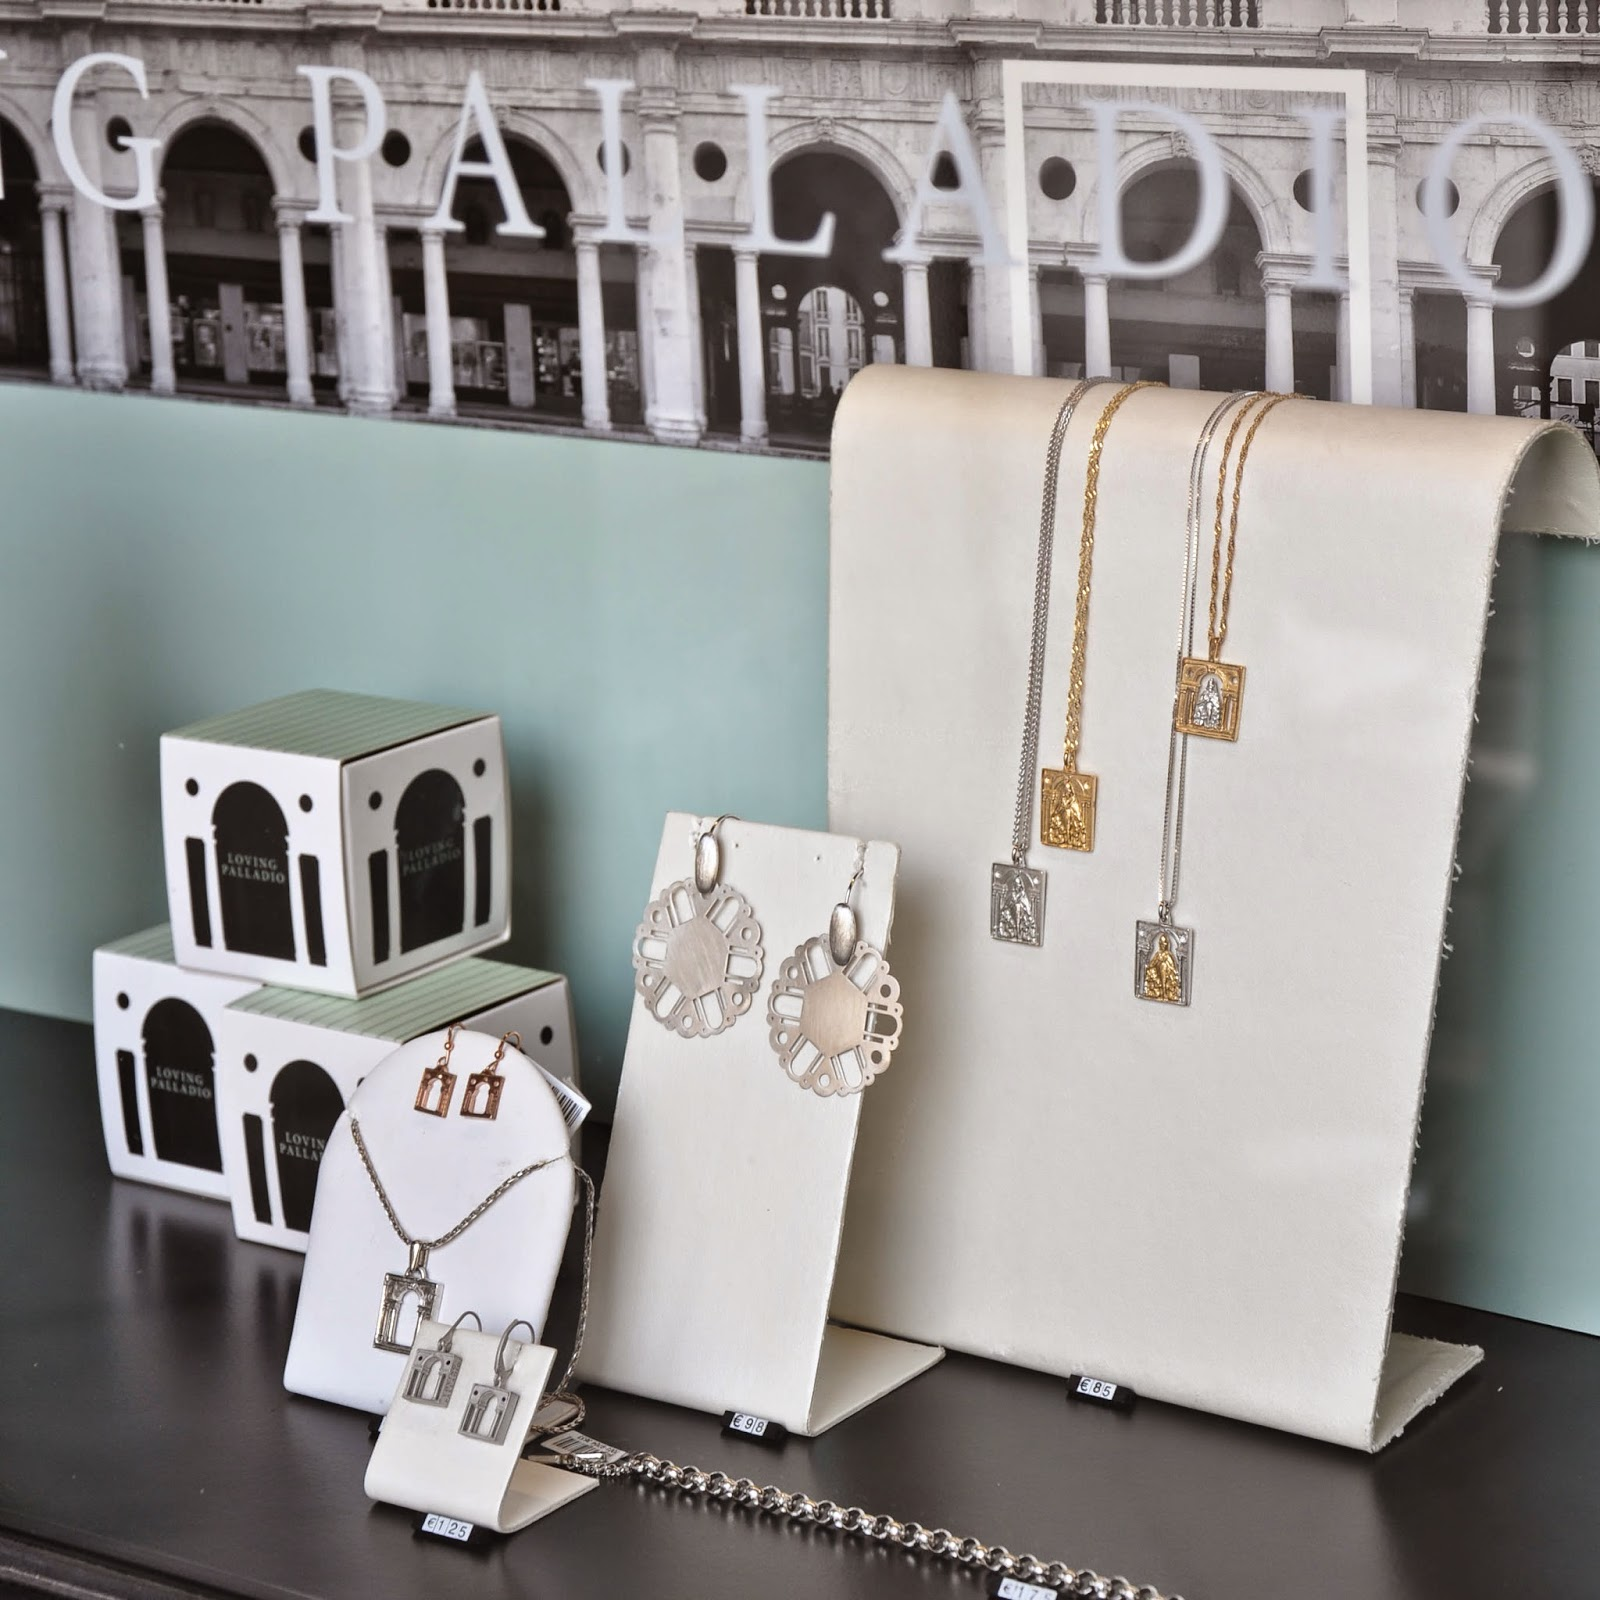 Jewellery inspired by Palladio - Gioielleria Soprana in Vicenza